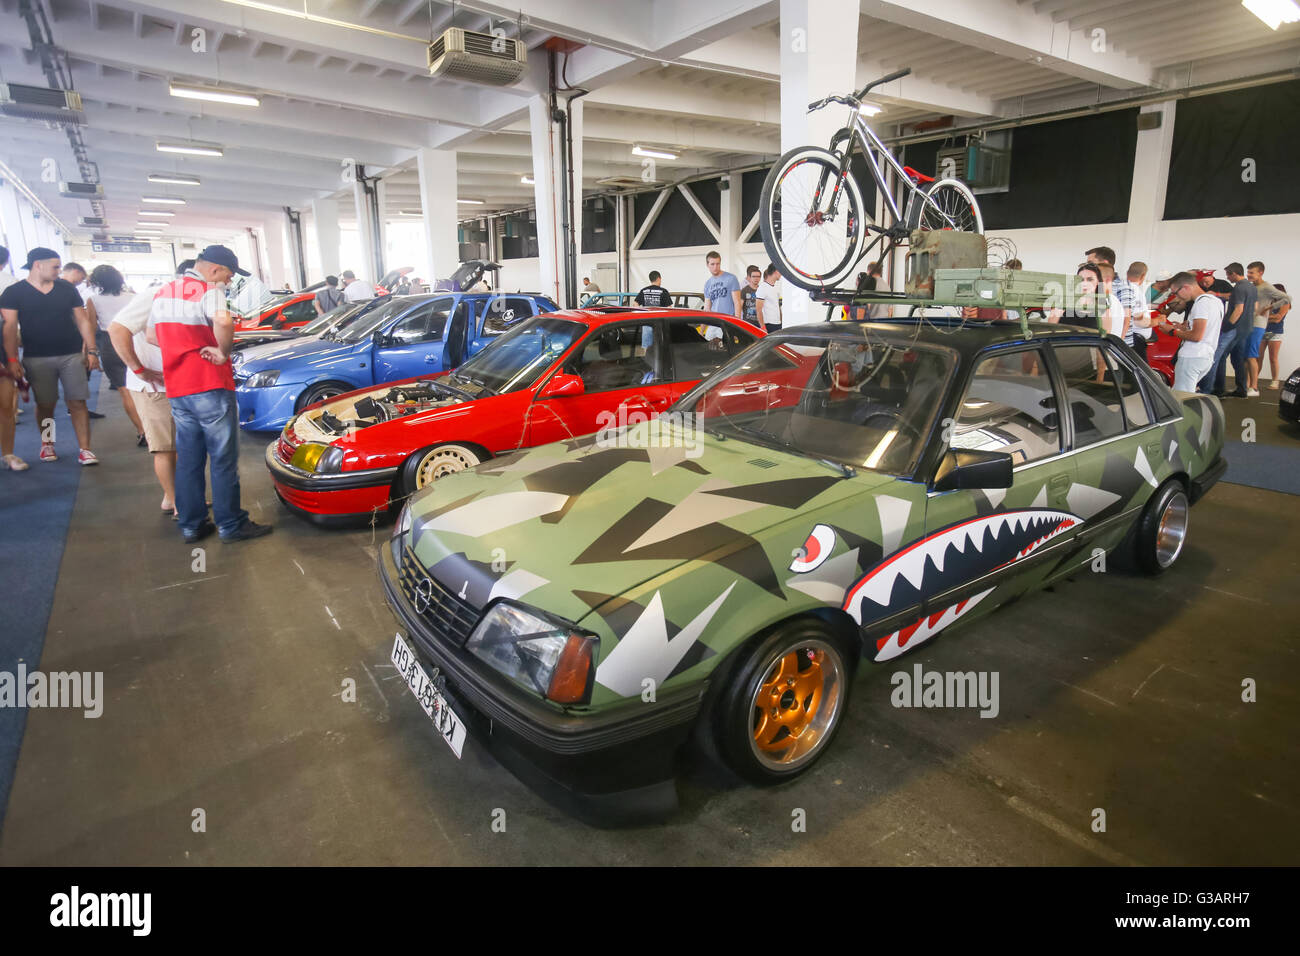 People sightseeing modern redecorated oldtimers cars exhibited at Fast and furious street race in Zagreb, Croatia. - Stock Image